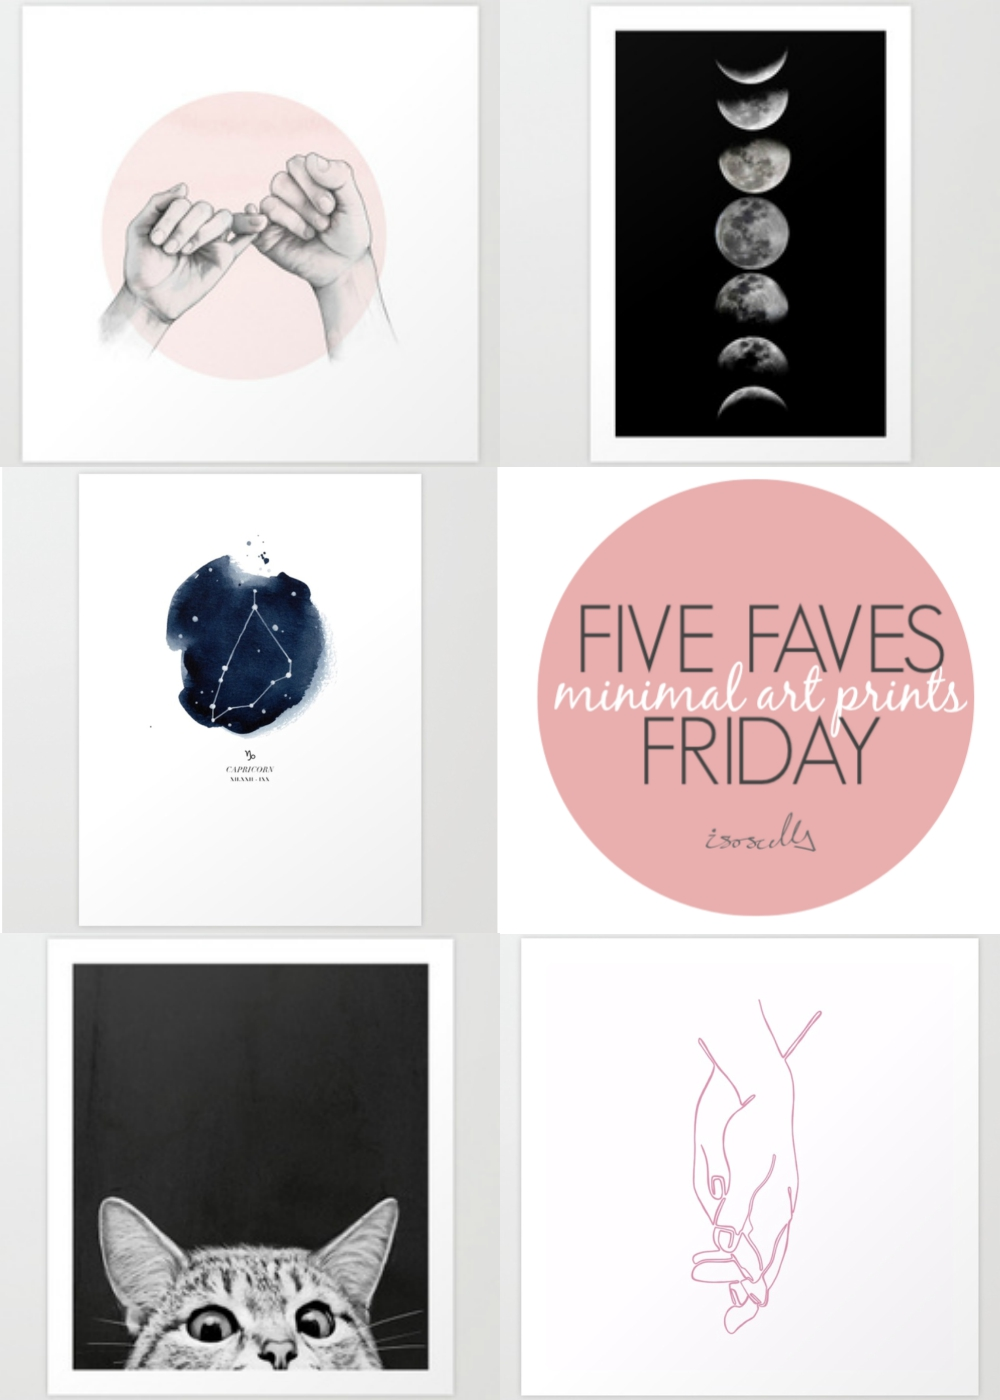 Five Faves Friday - Minimal Art Prints on Isoscella